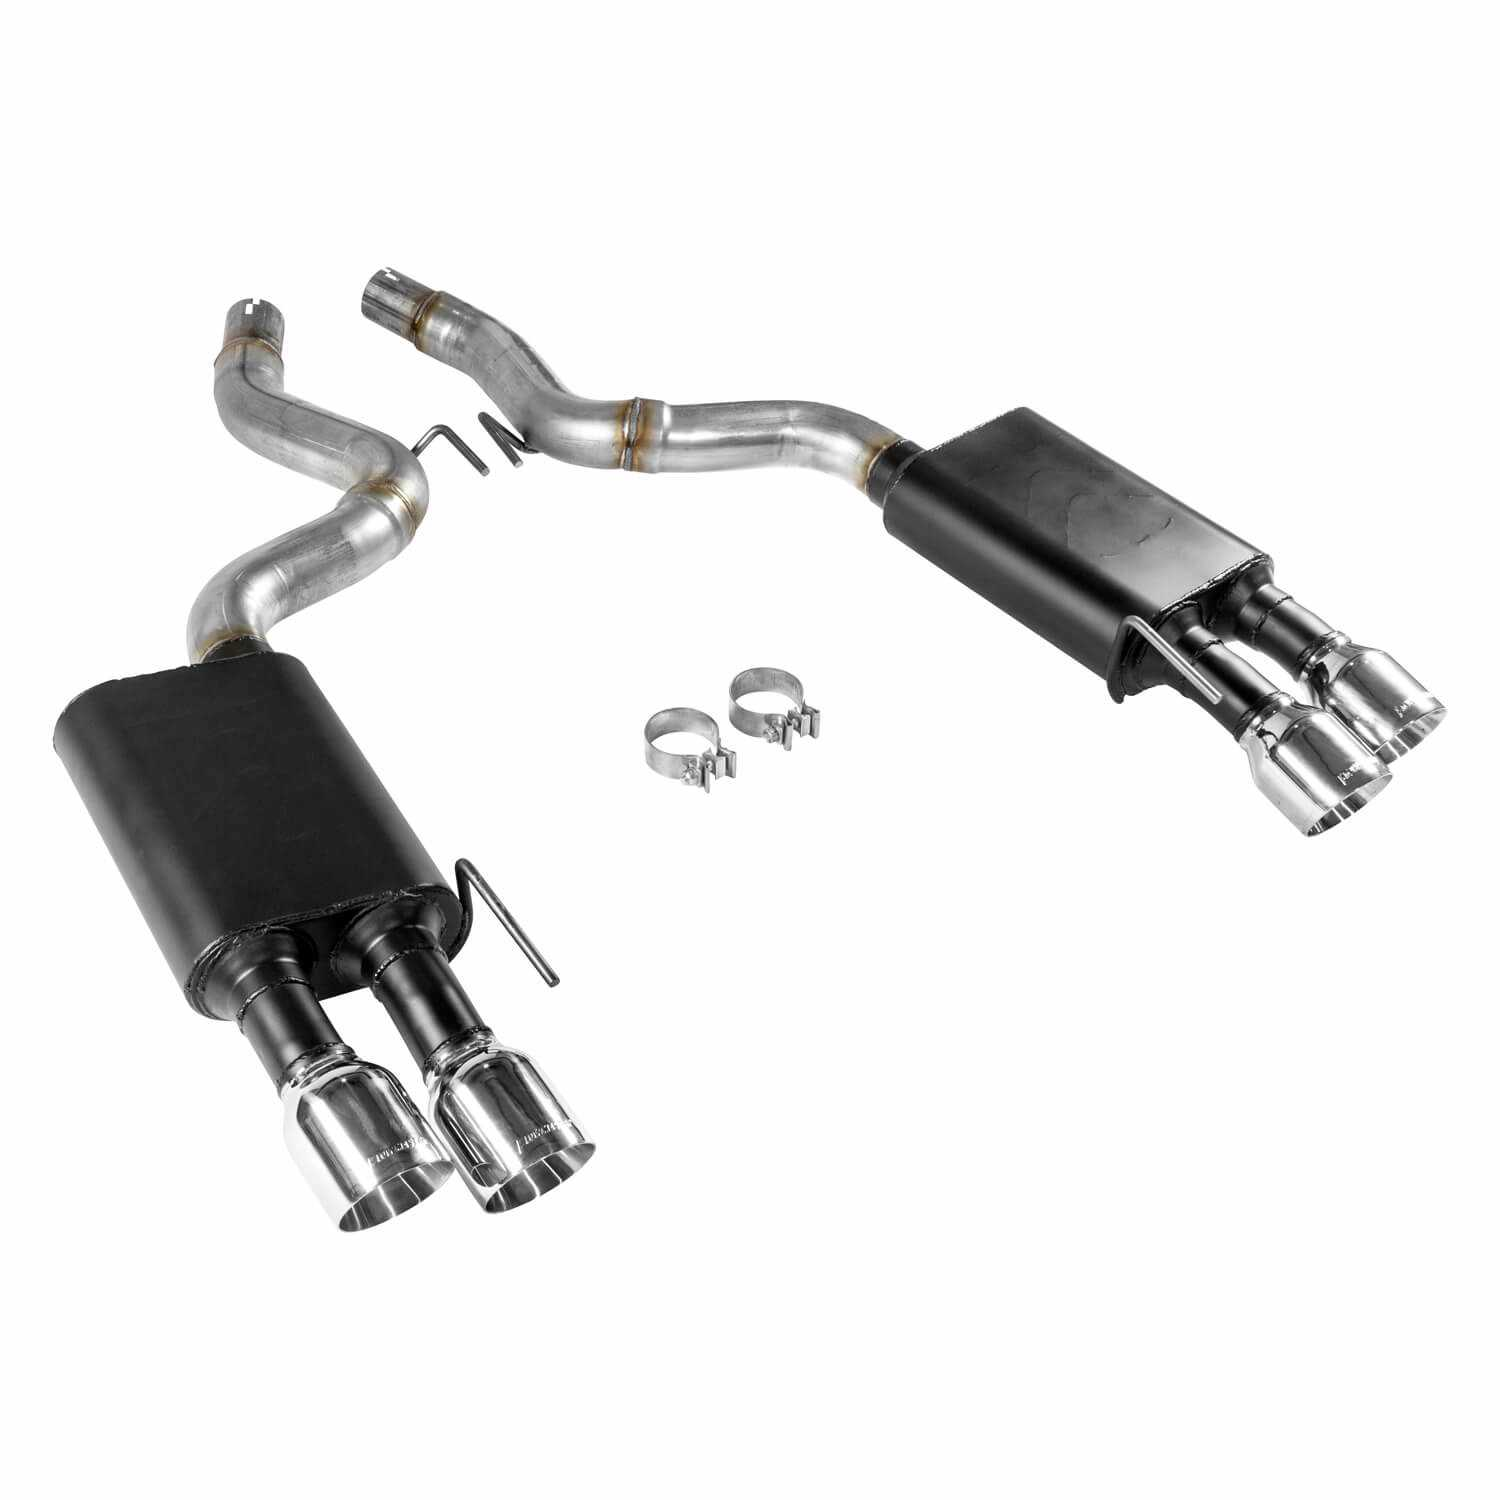 817807 Flowmaster American Thunder Axle Back Exhaust System